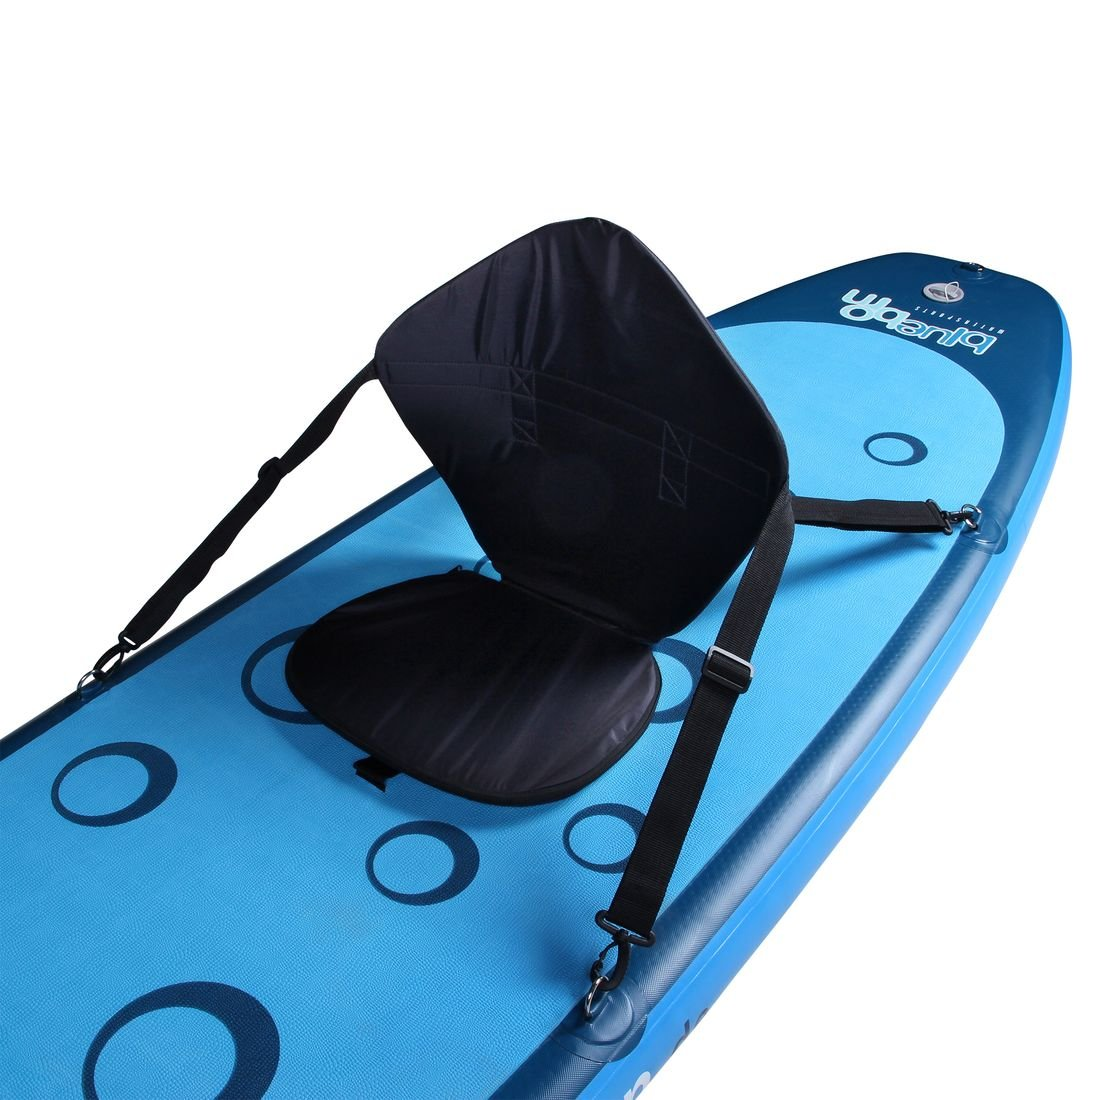 ... Stand Up Paddle Board Set incl. remo, asiento de kayak, reposapiés, bomba con manómetro y bolsa de transporte, set de kayak inflable, tabla de surf con ...